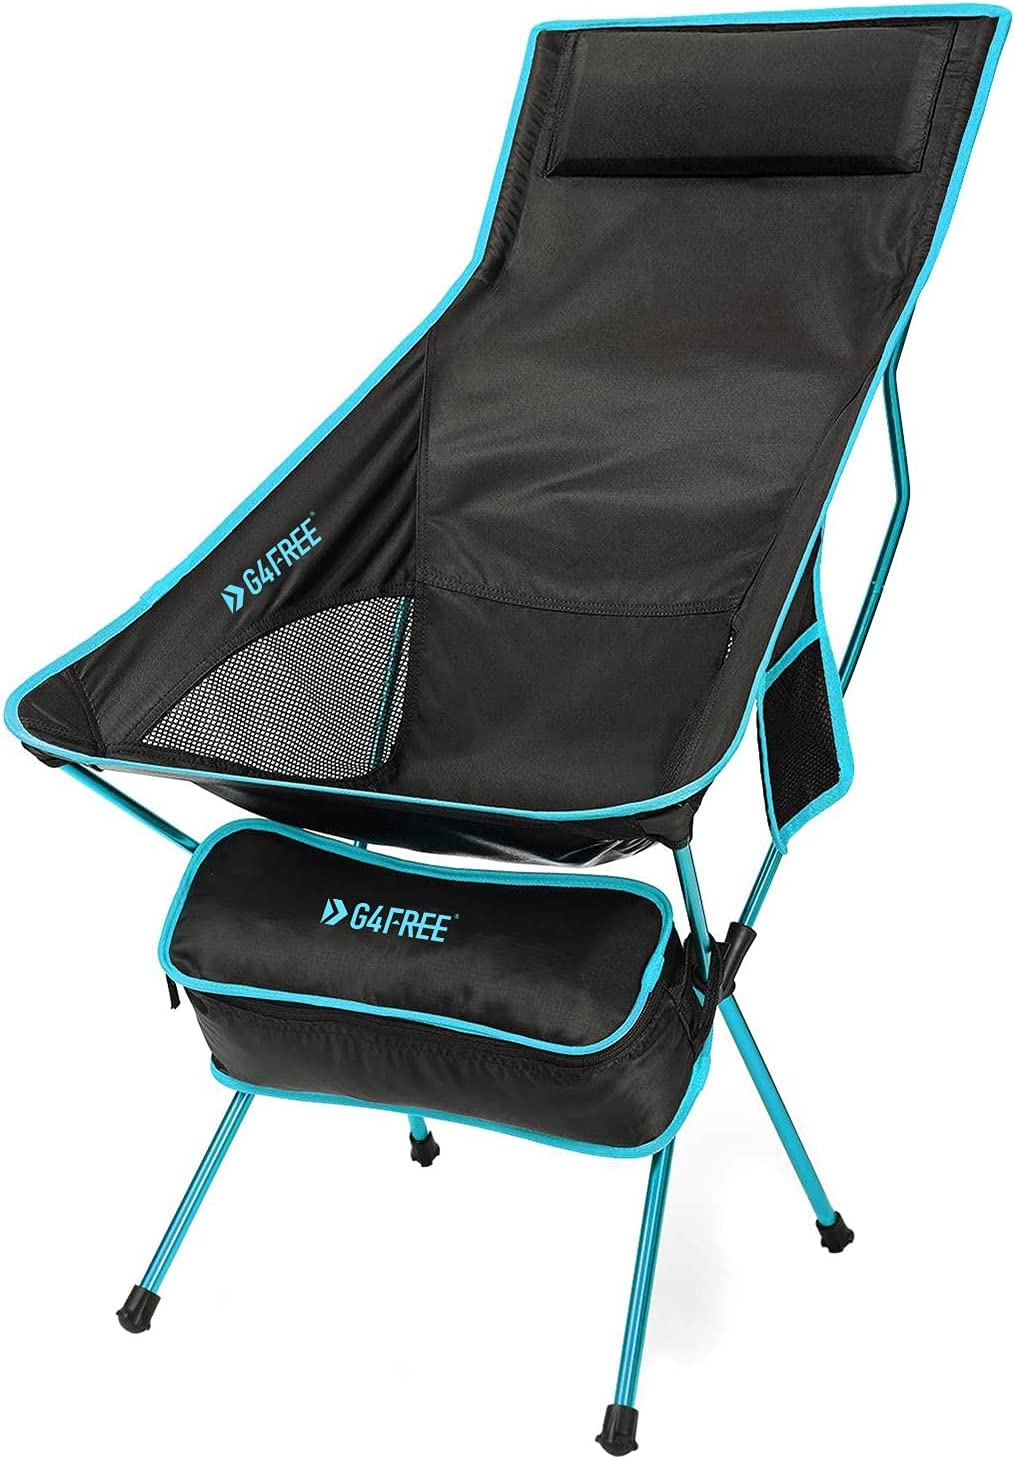 G4Free 2021 model Lightweight Portable High Back Bac Chair Folding Camping Free shipping on posting reviews